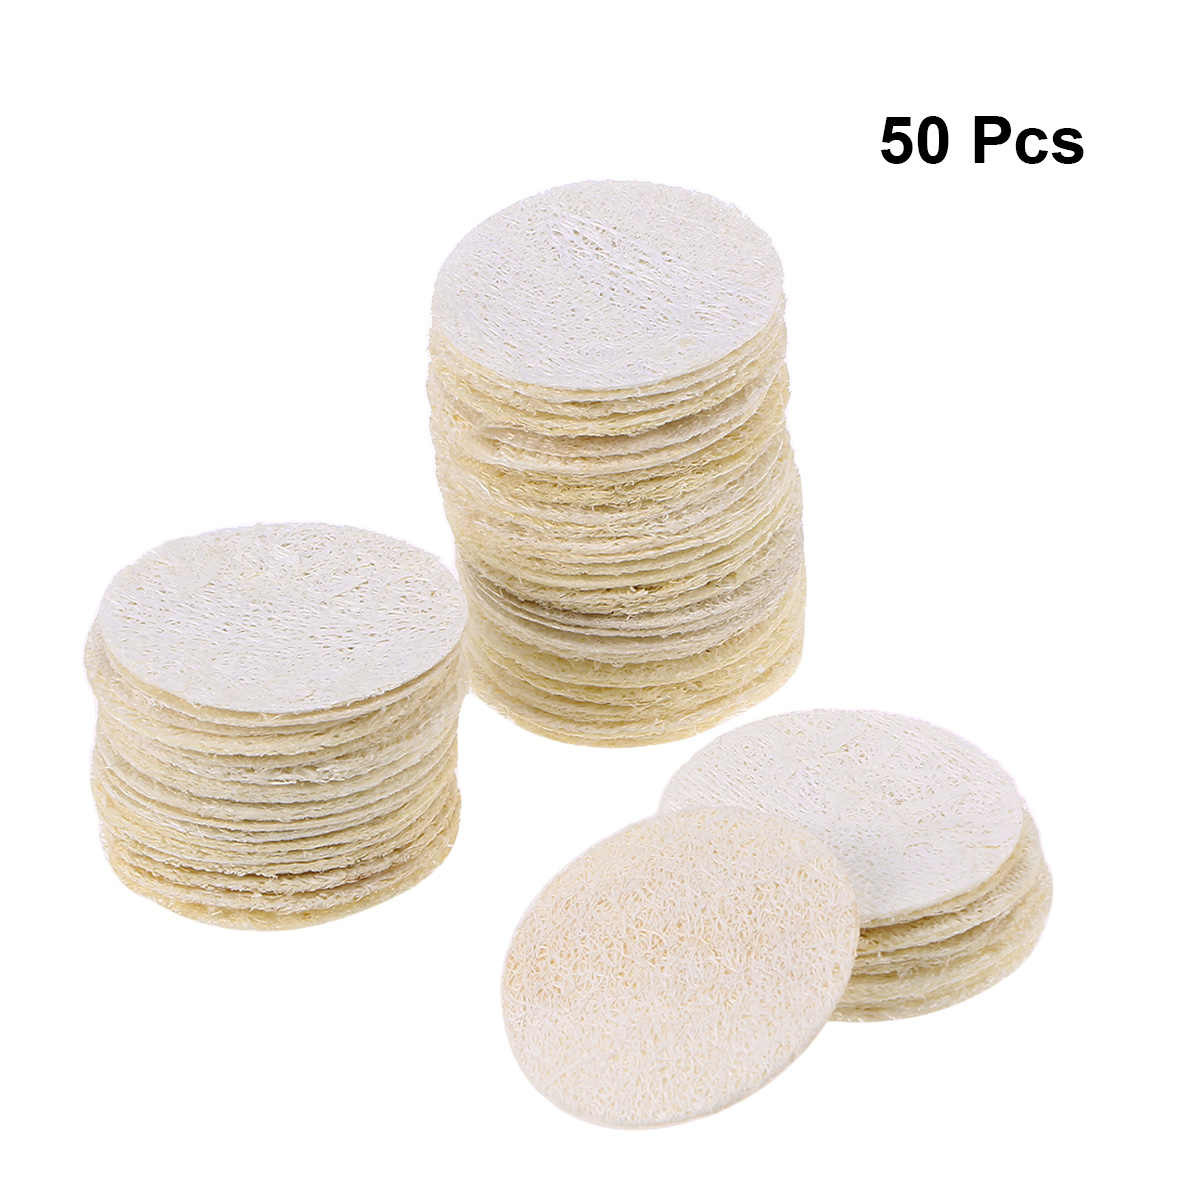 50pcs Round Reusable Loofah Scrubbing Exfoliating Facial Makeup